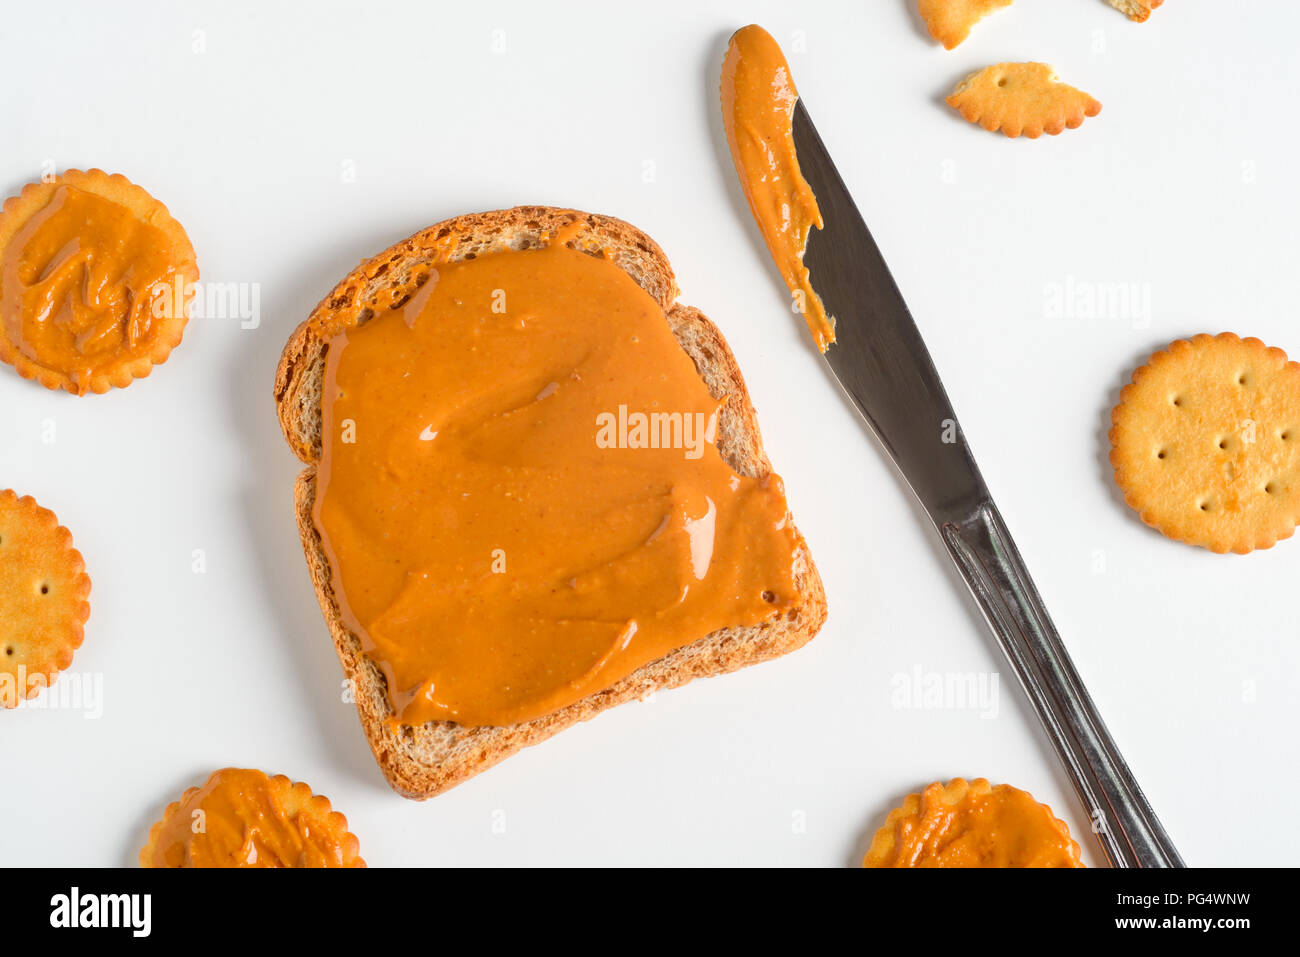 Whole wheat peanut butter sandwich, close-up. Knife, crackers, white background. Stock Photo